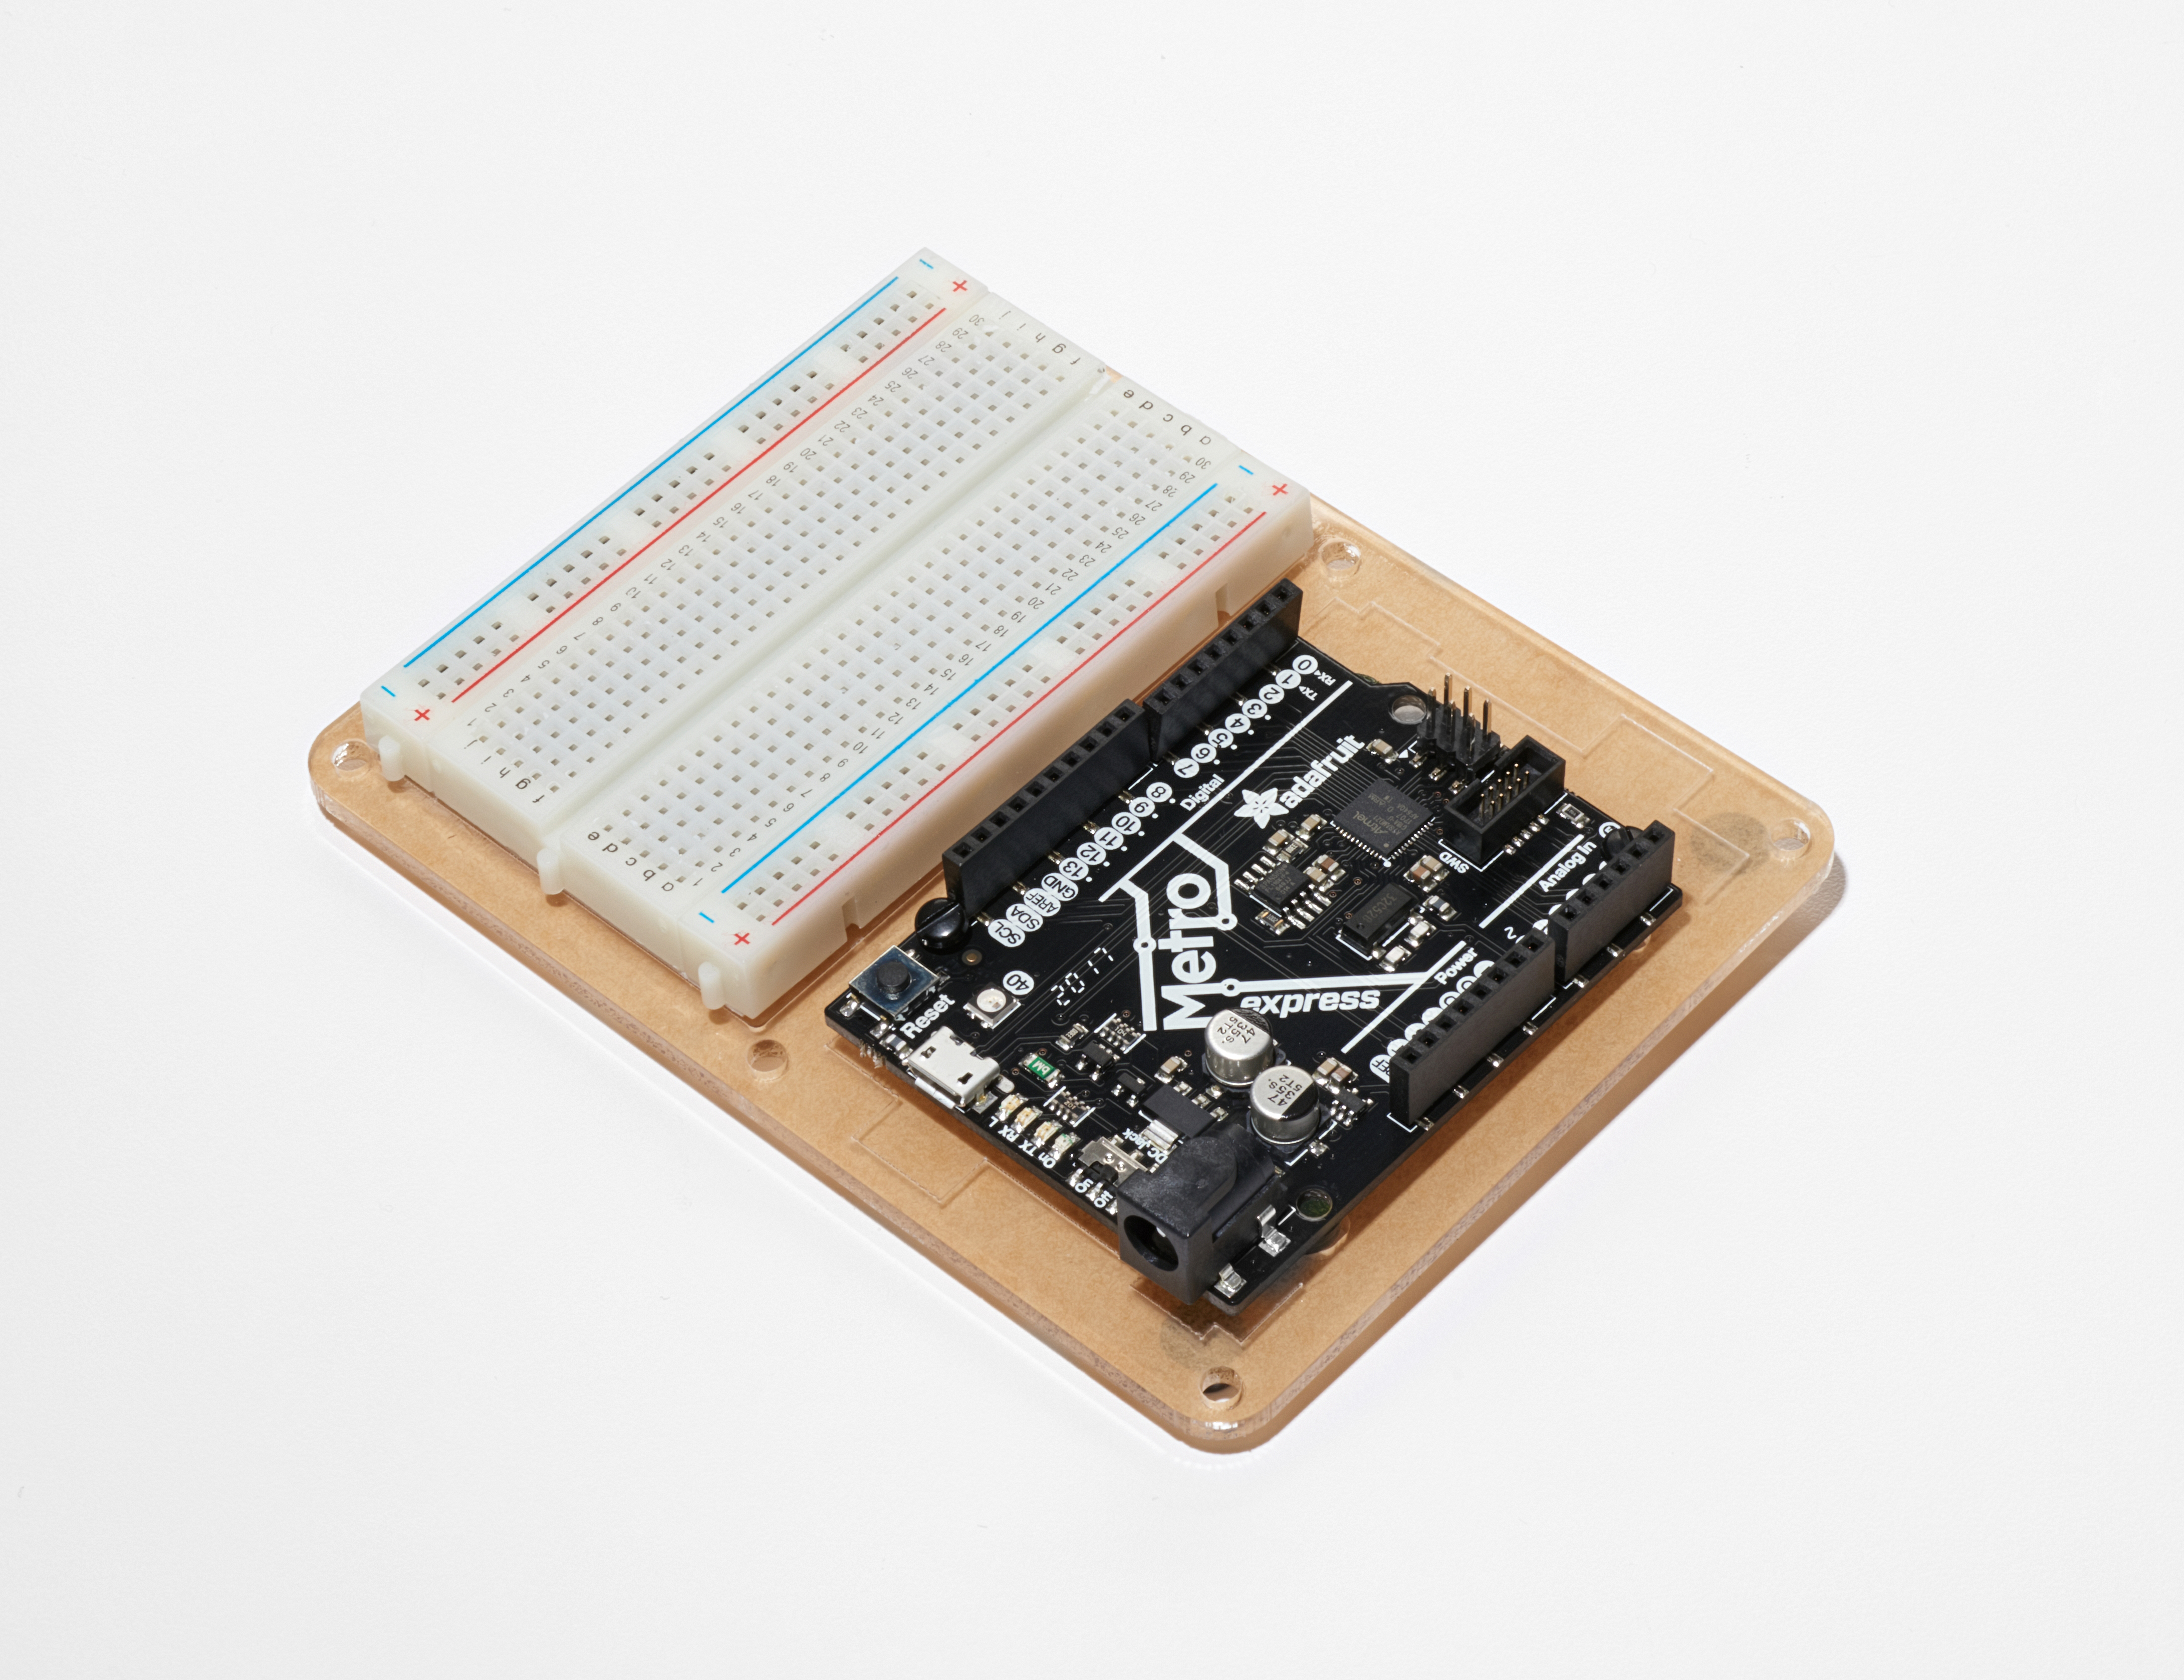 sensors_Adafruit_Metro_Breadboard_Routing_Plate_White_Background_ORIG.jpg